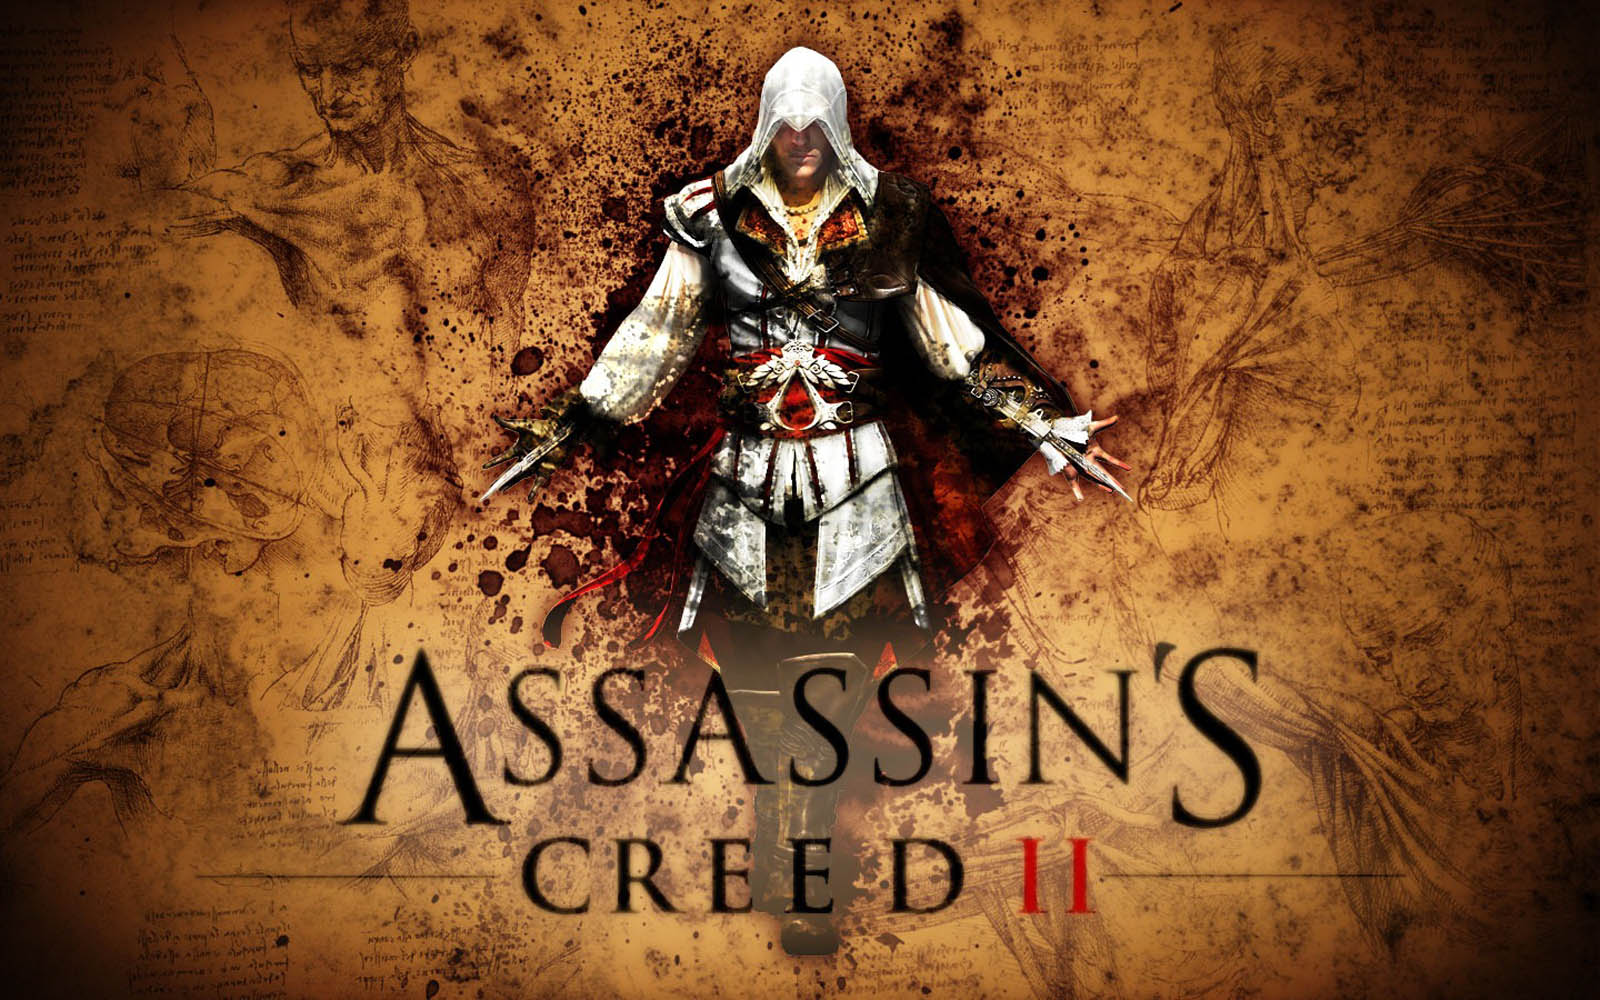 wallpapers Assassins Creed 2 Game Wallpapers 1600x1000